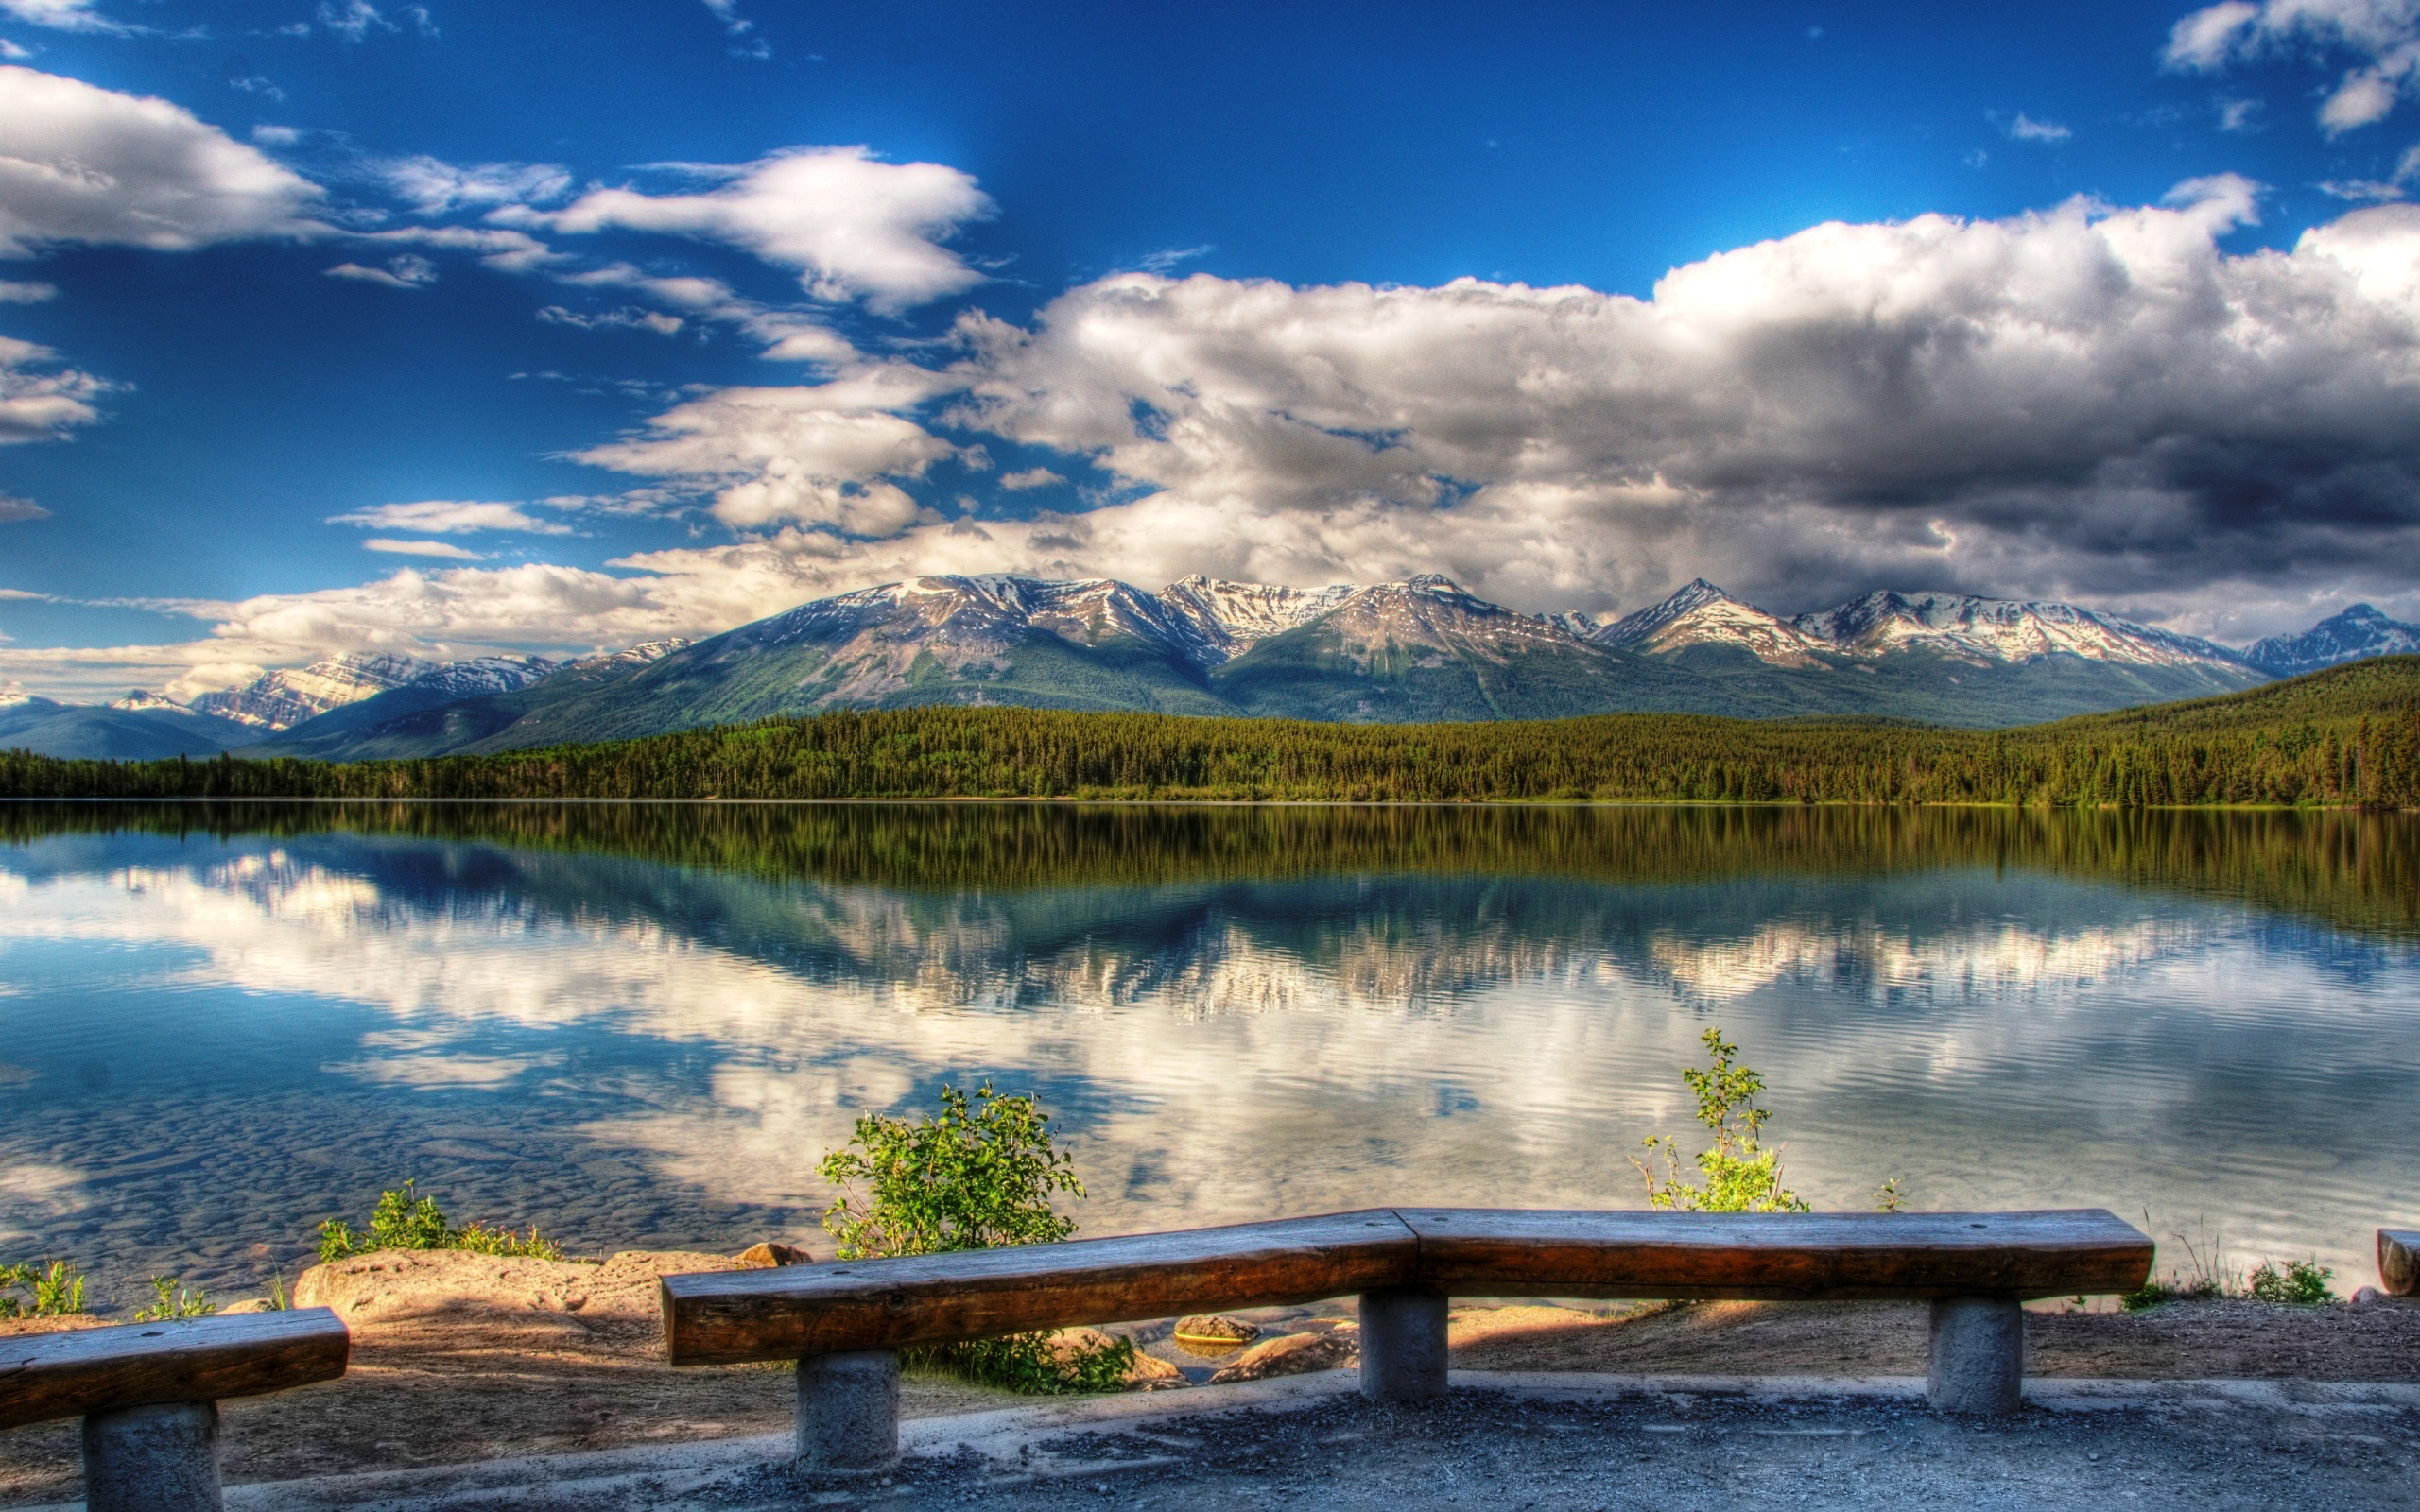 Hdr full hd wallpaper and background image 2560x1600 id155303 photography hdr wallpaper altavistaventures Gallery